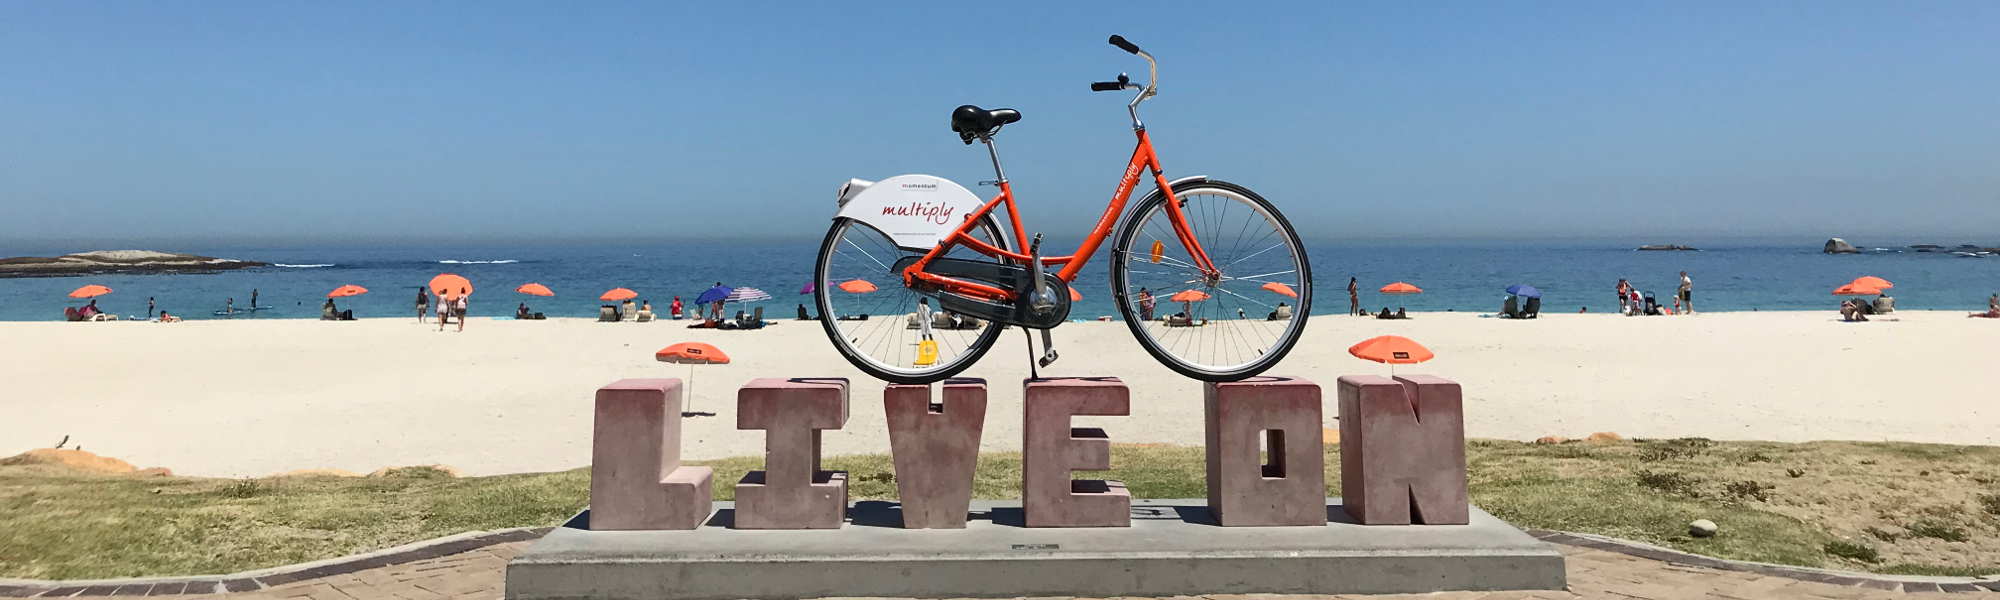 Camps Bay, Stations, Up Cycles, Bike Hire, Cape Town, Drop and go